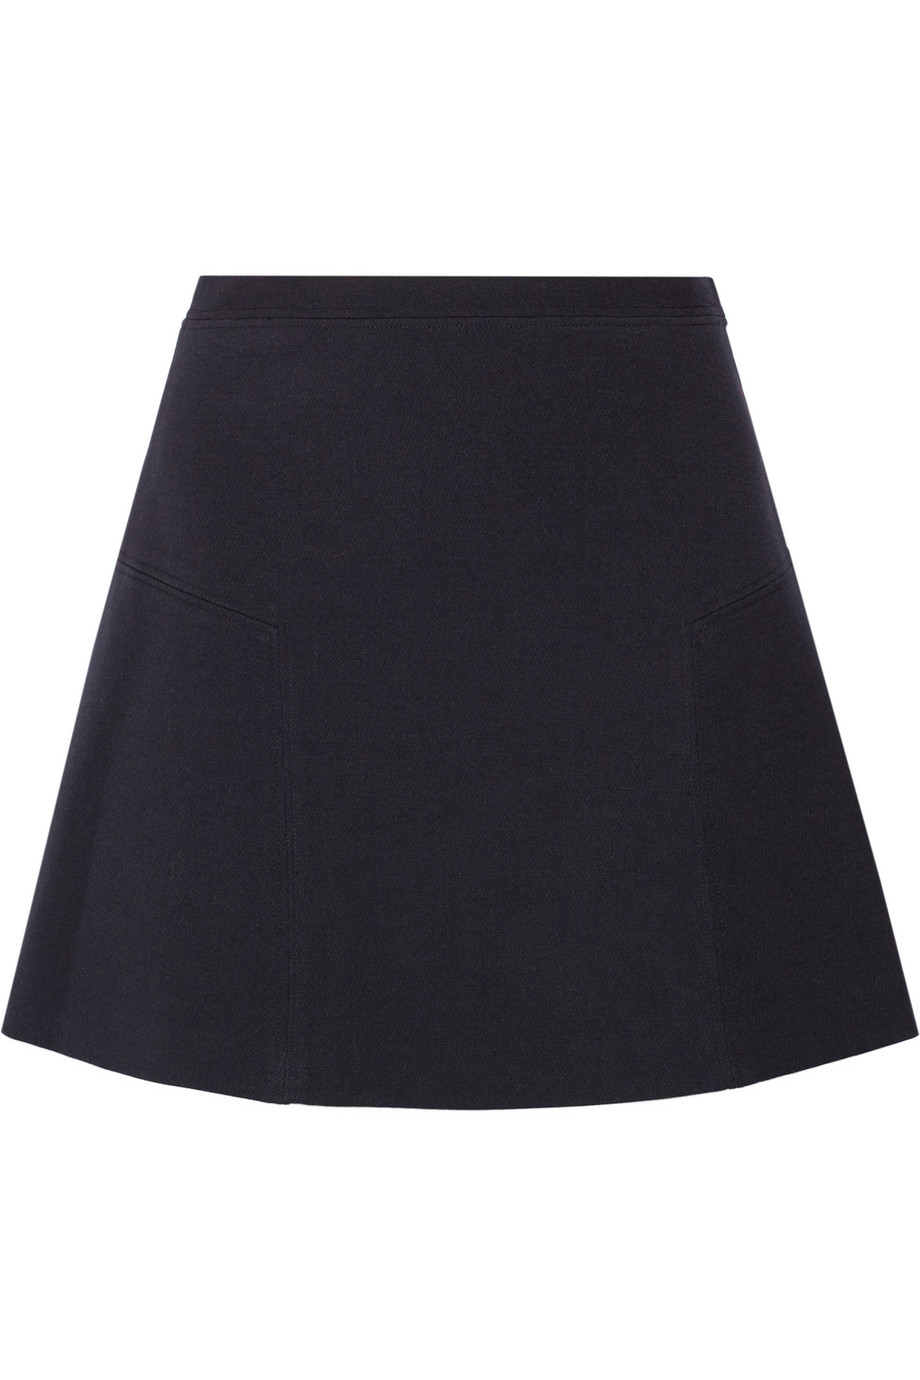 Crepe Mini Skirt, Michael Michael Kors, Midnight Blue, Women's, Size: 8